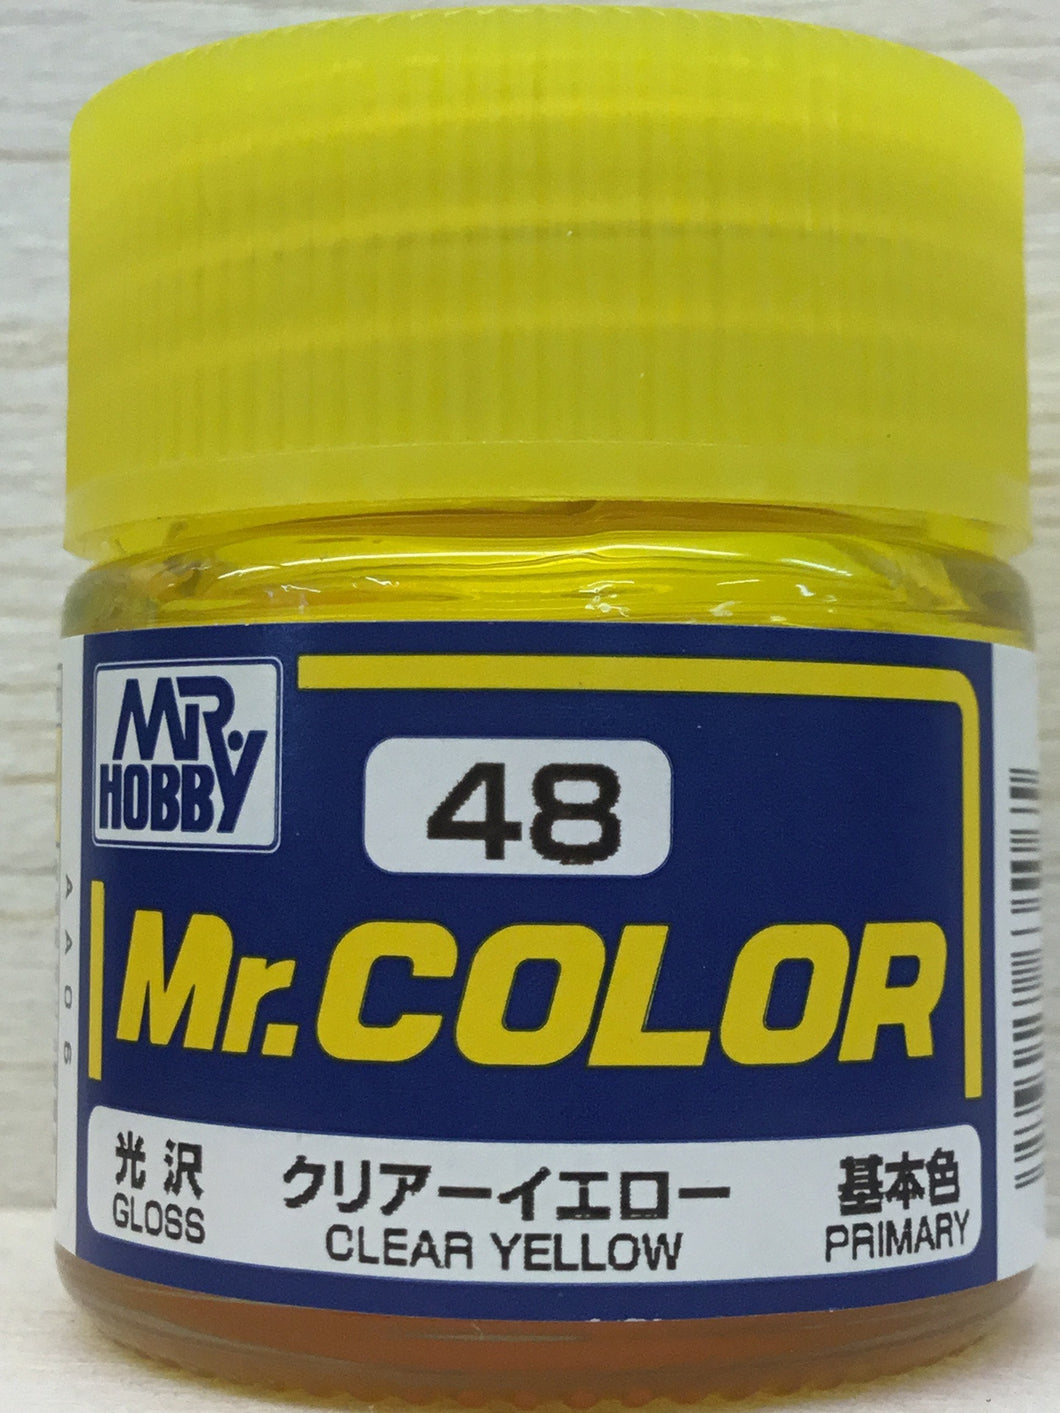 GUNZE MR COLOR C48 GLOSS CLEAR YELLOW